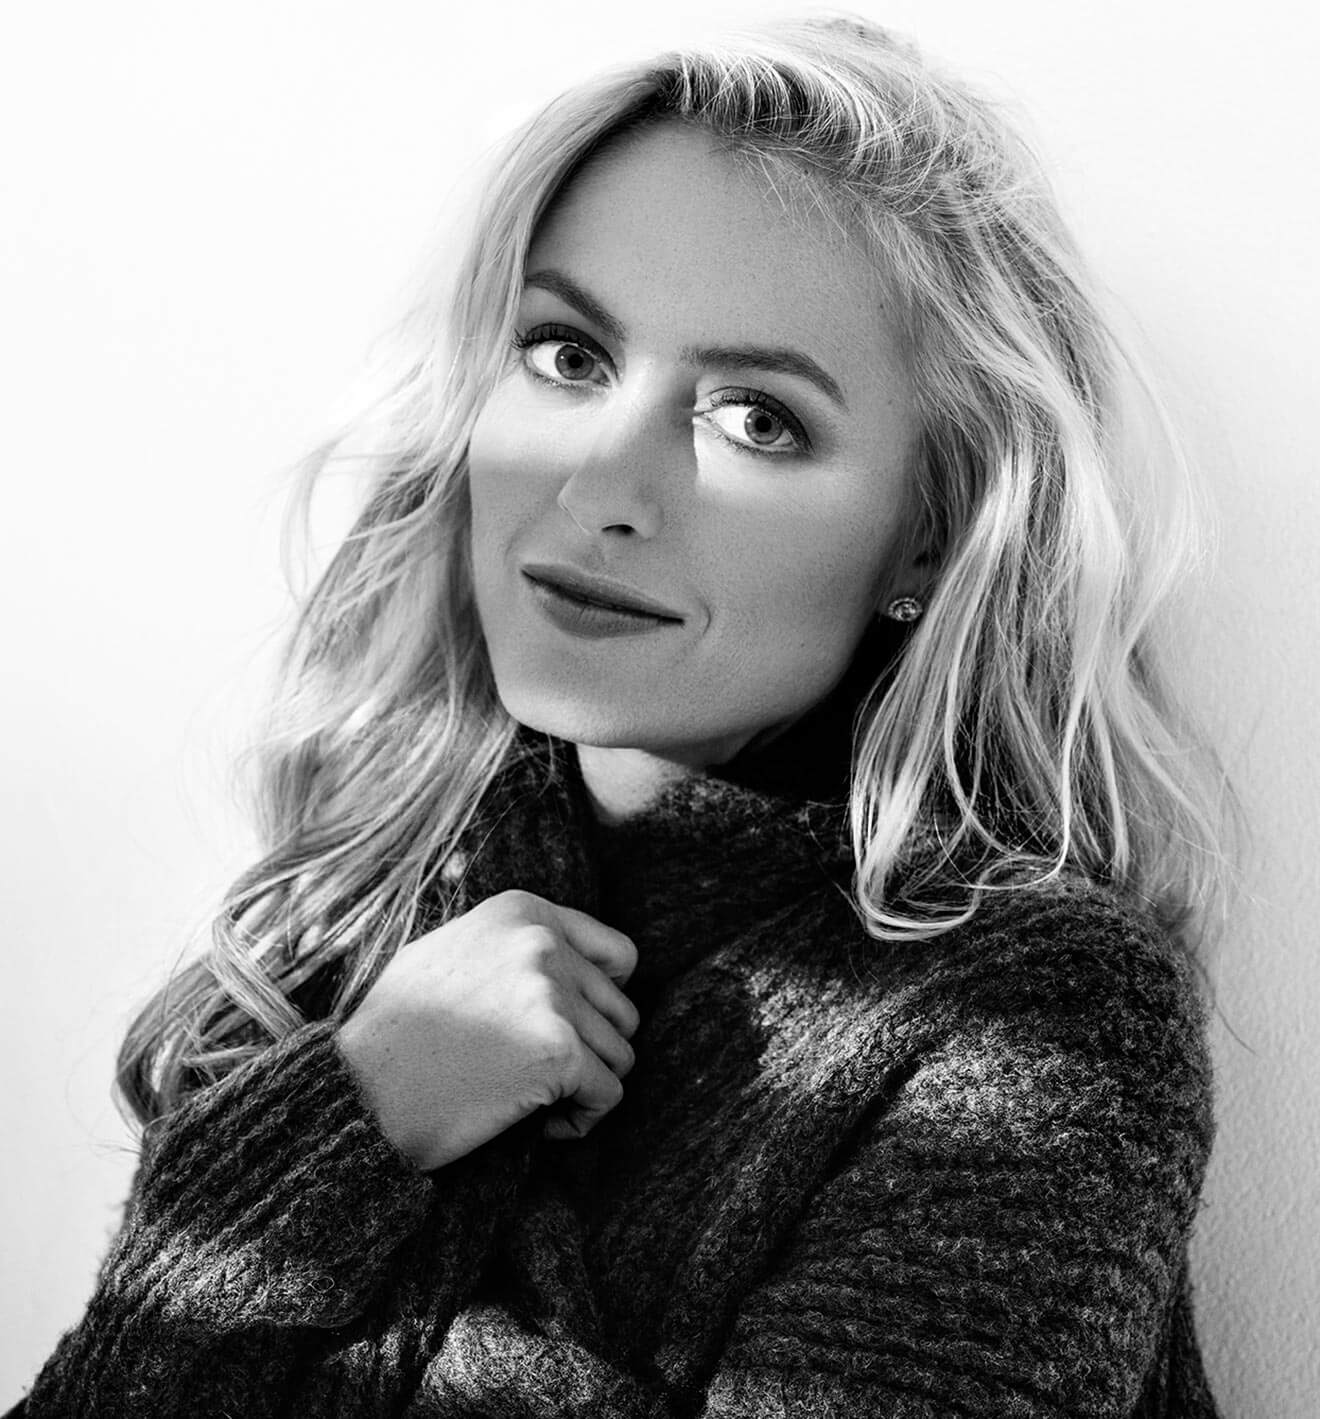 Chillin' with Amy Rutberg, black and white, wrapping sweater